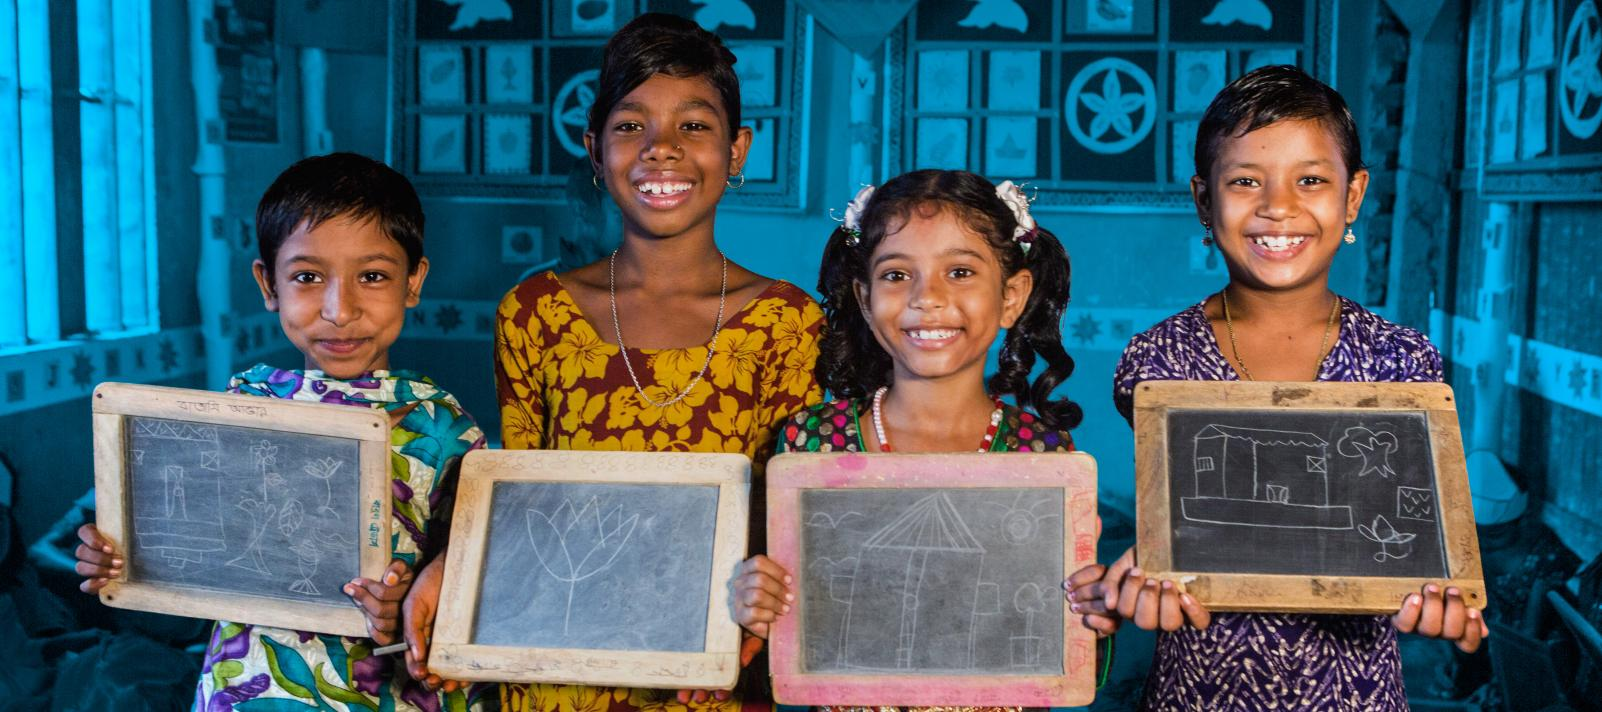 Four girls hold drawings on chalkboards